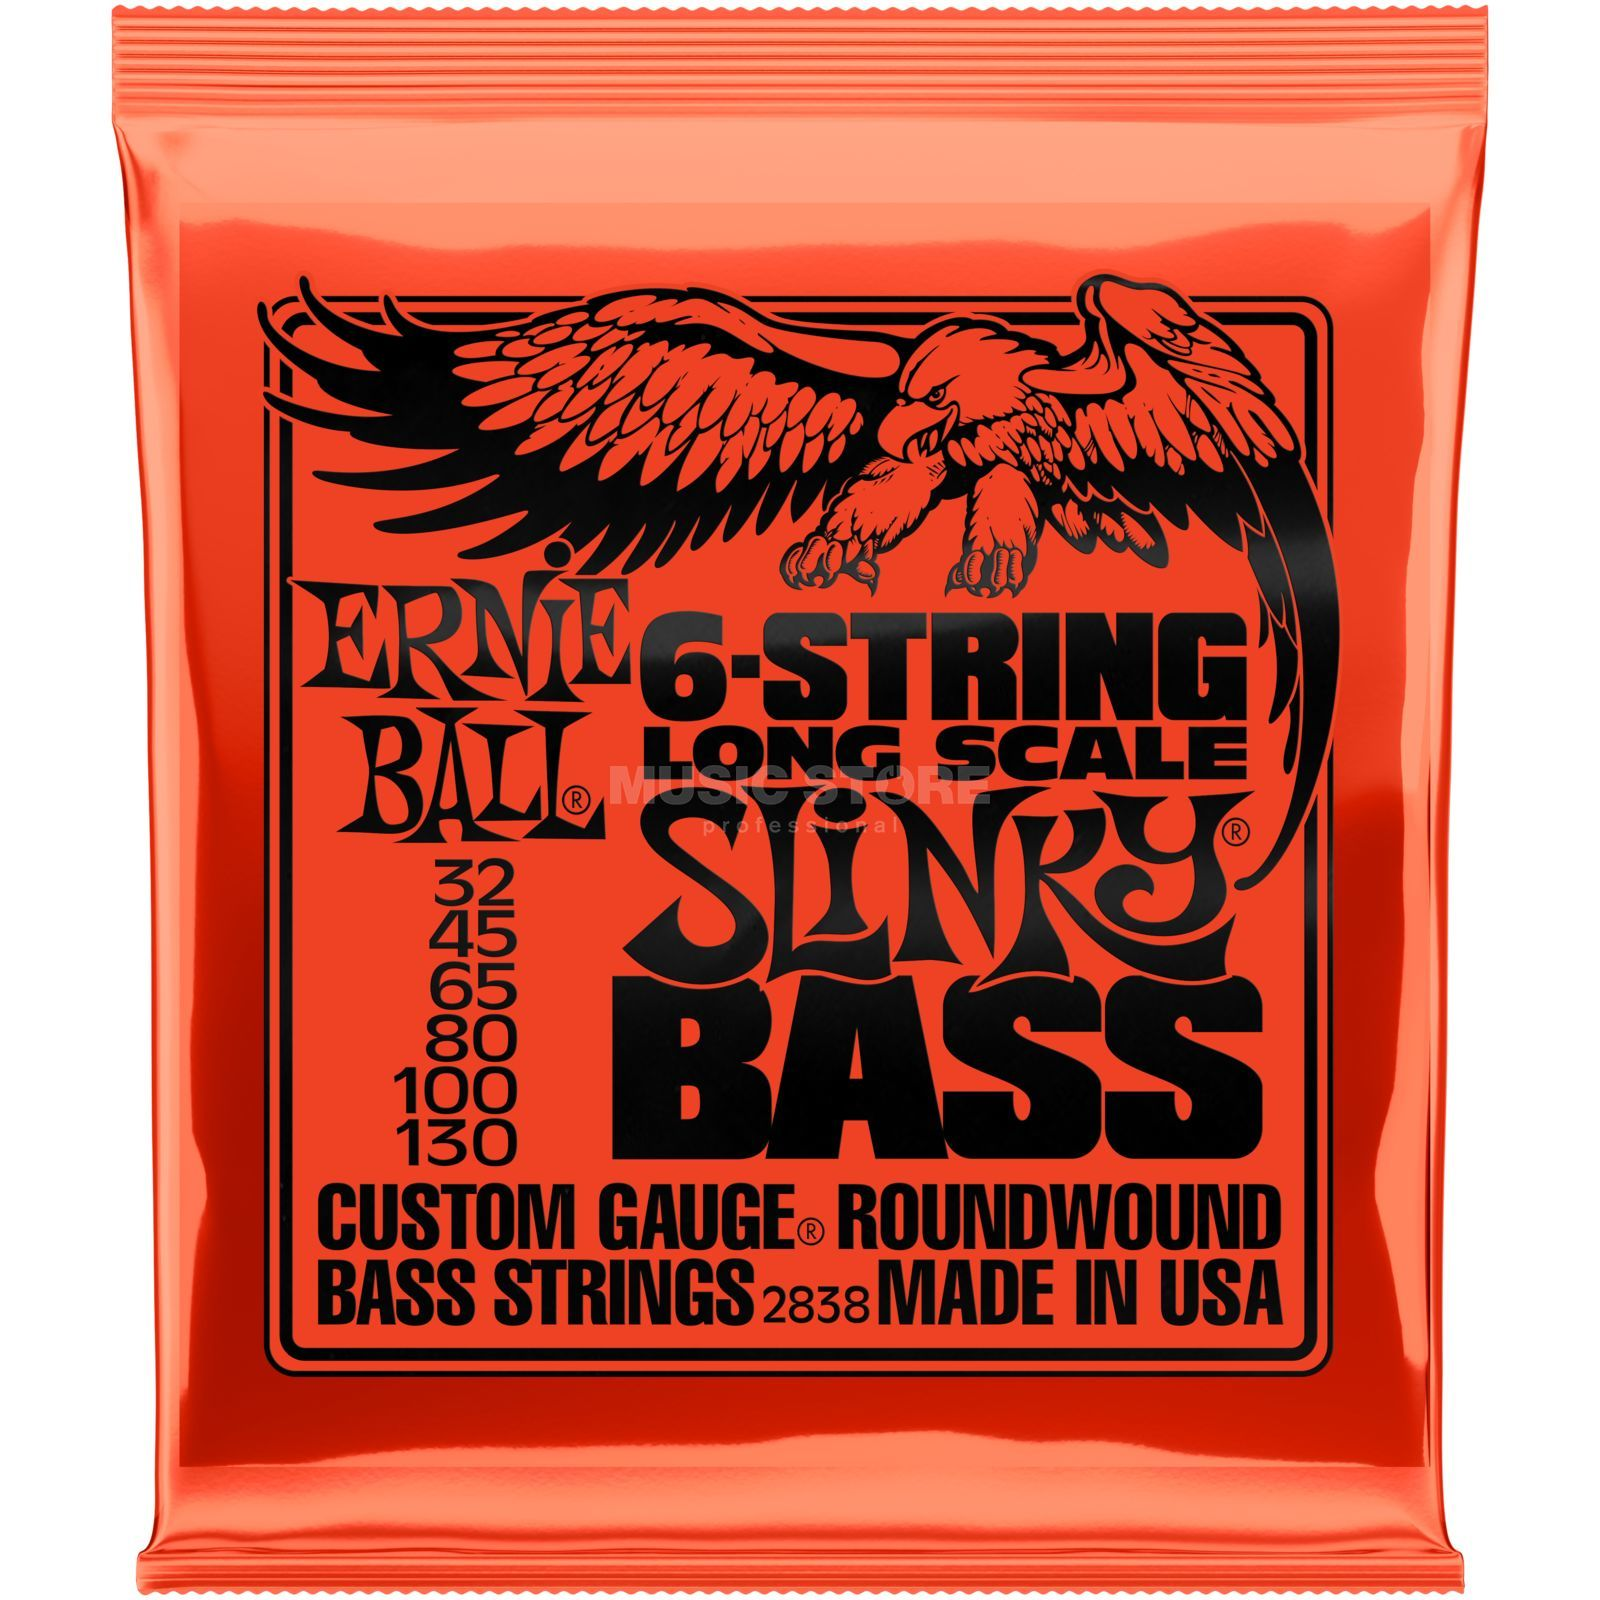 Ernie Ball Bass Strings 32-130 6-String Nickel Wound Produktbillede